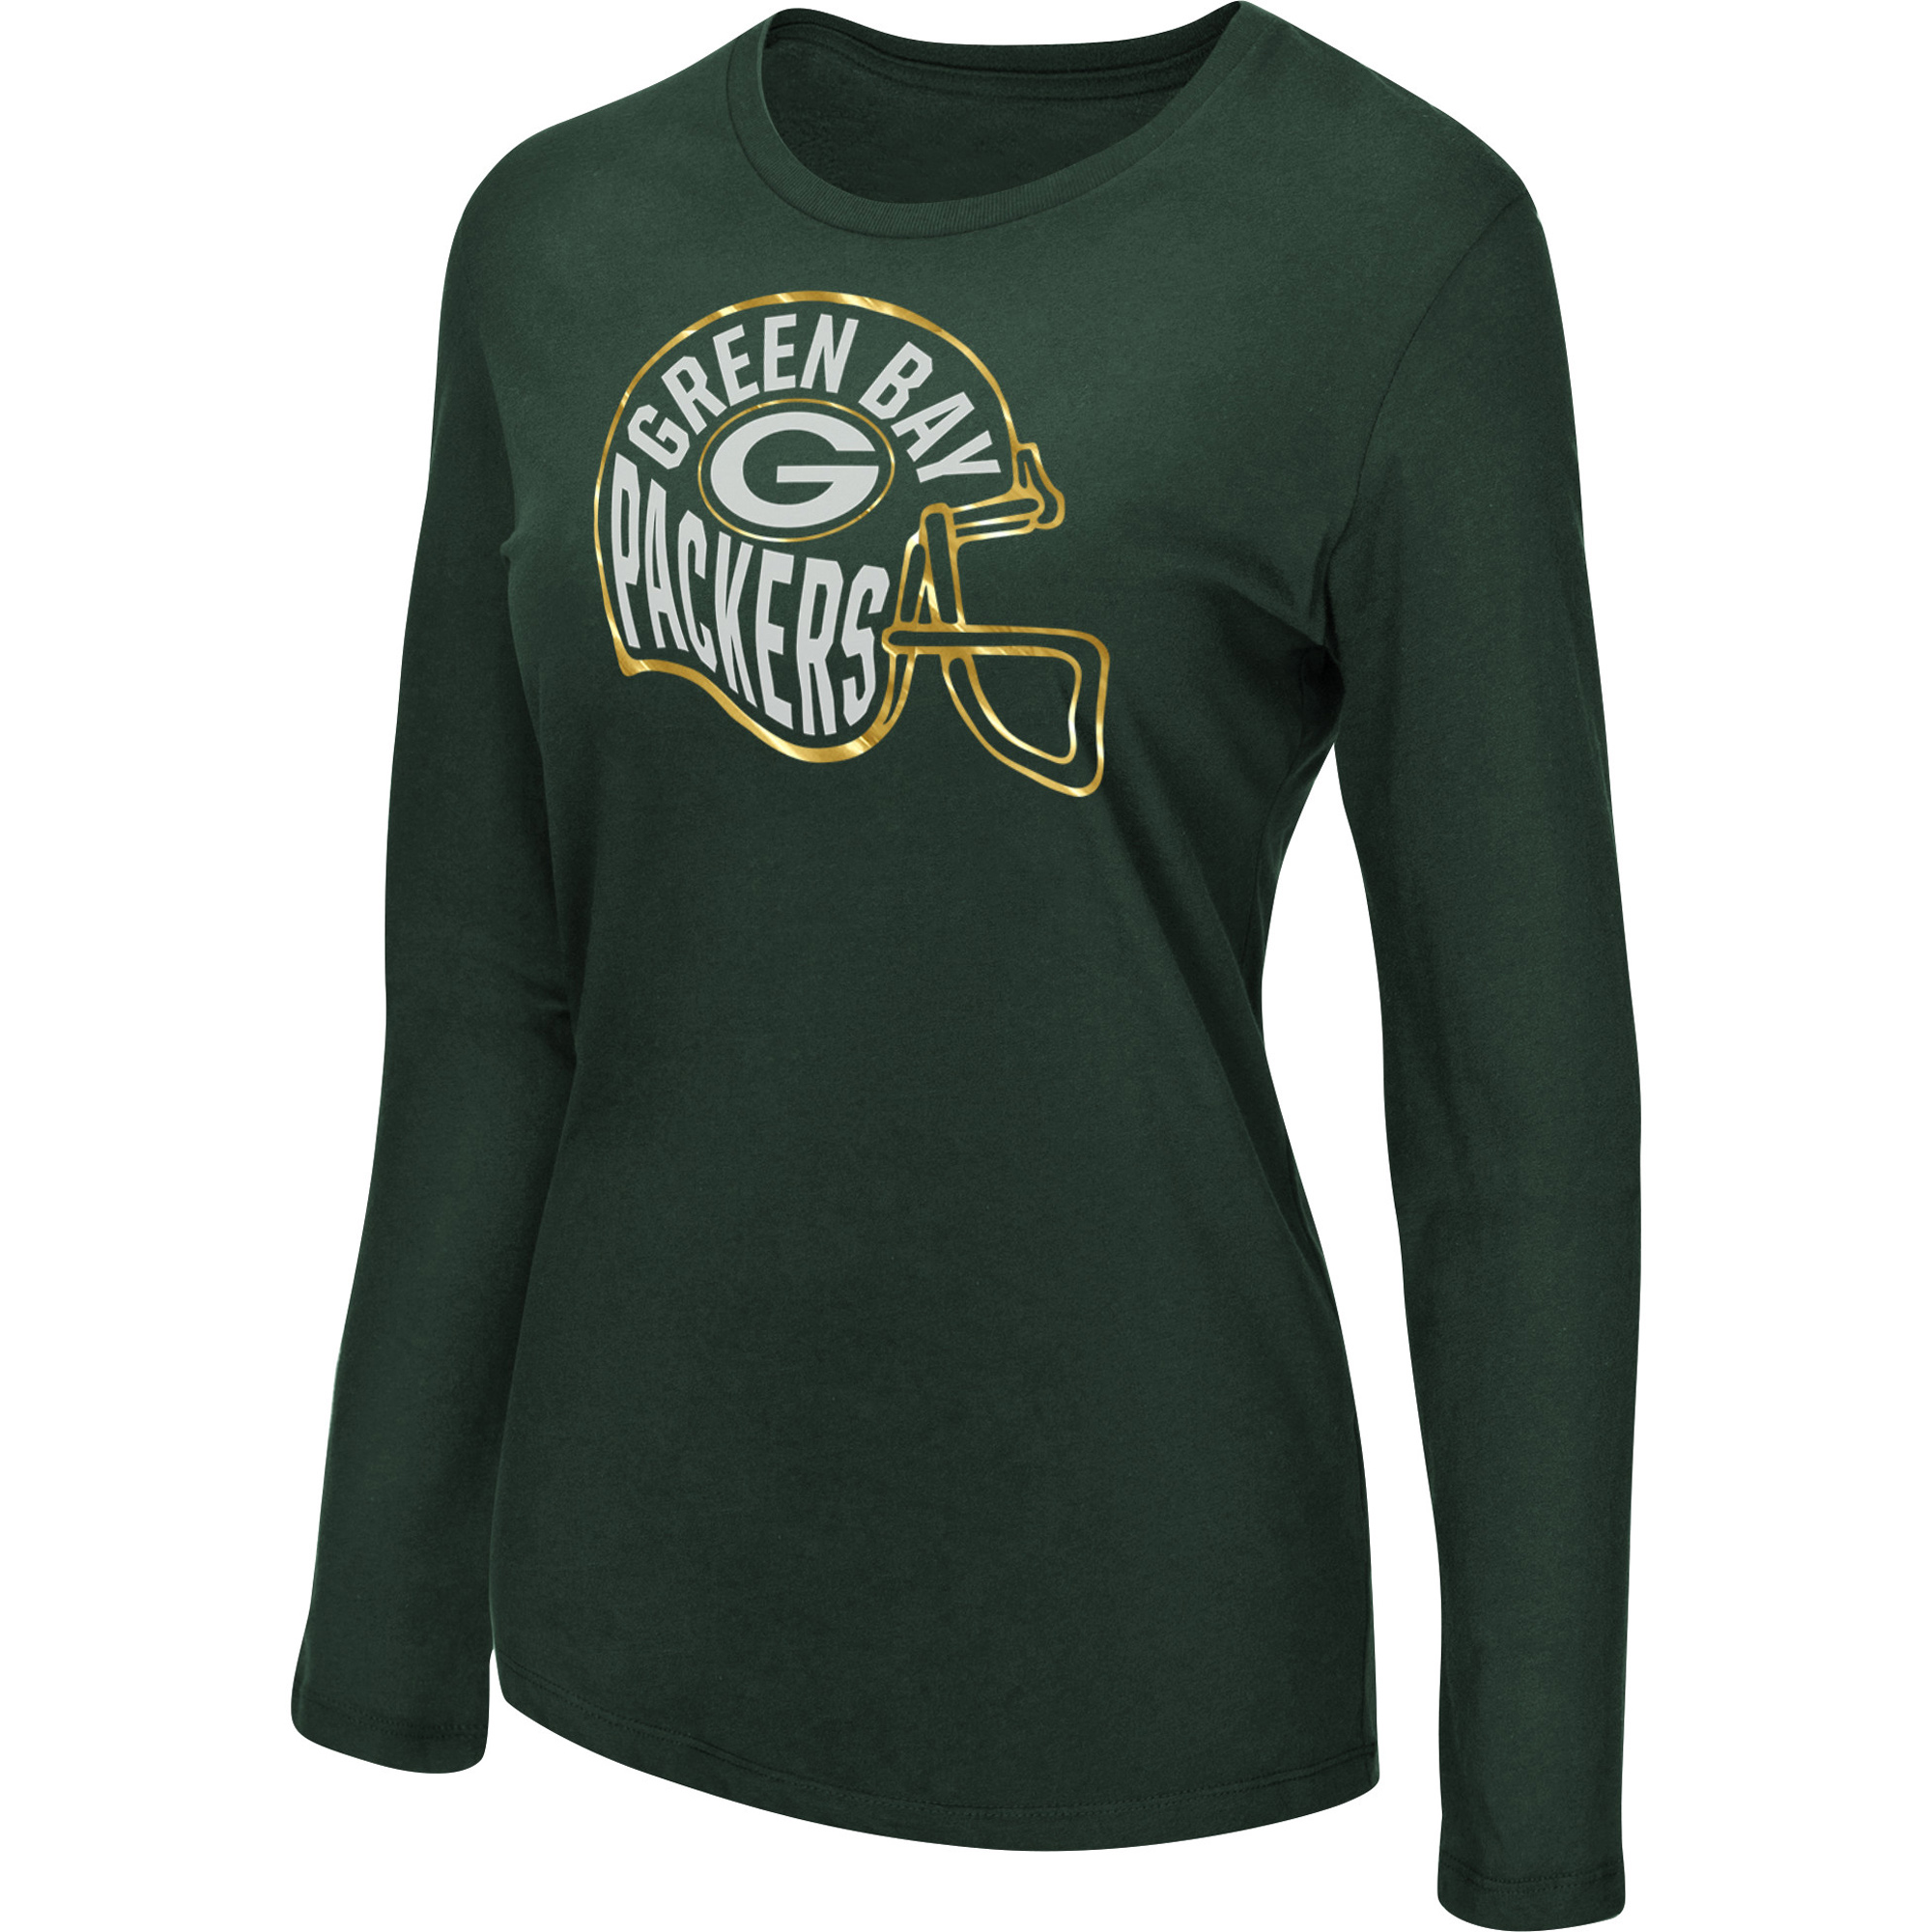 Women's Majestic Green Green Bay Packers Turn it Loose Long Sleeve T-Shirt